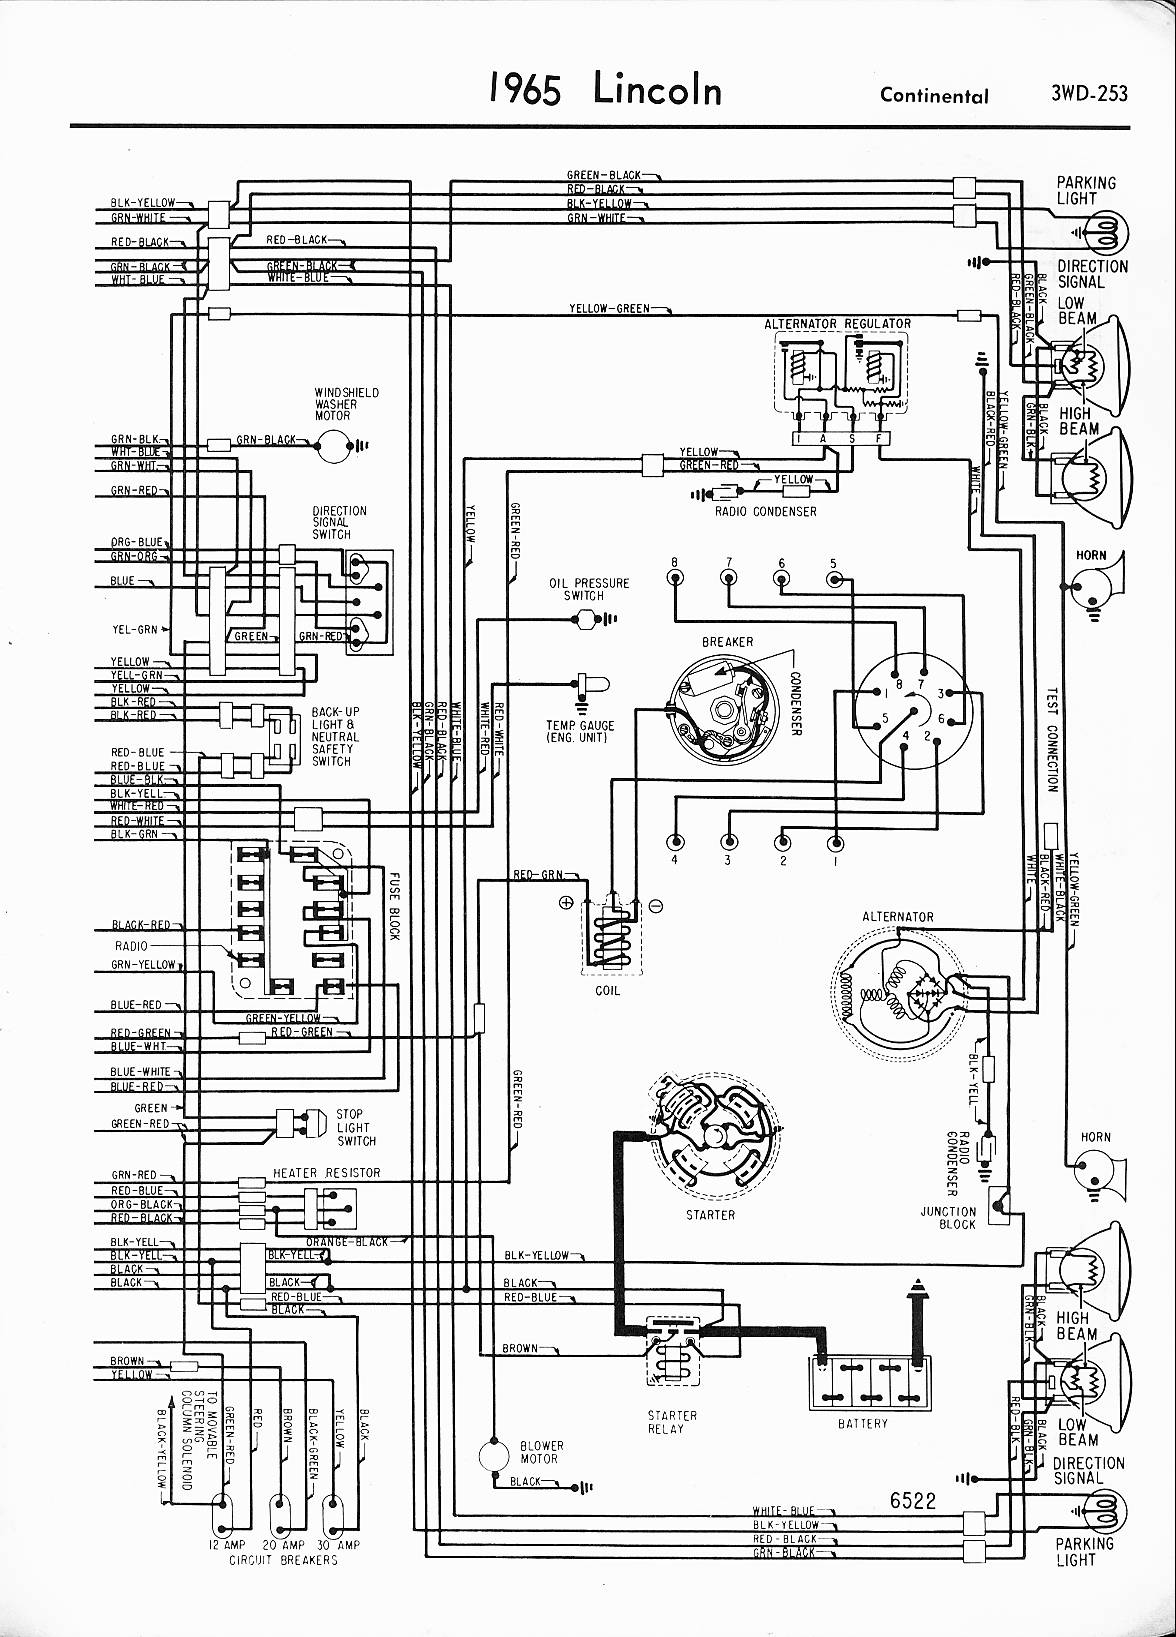 1965 lincoln continental wiring diagram wiring diagram third levellincoln wiring diagrams 1957 1965 1965 lincoln continental wiring diagram 1965 lincoln continental wiring diagram